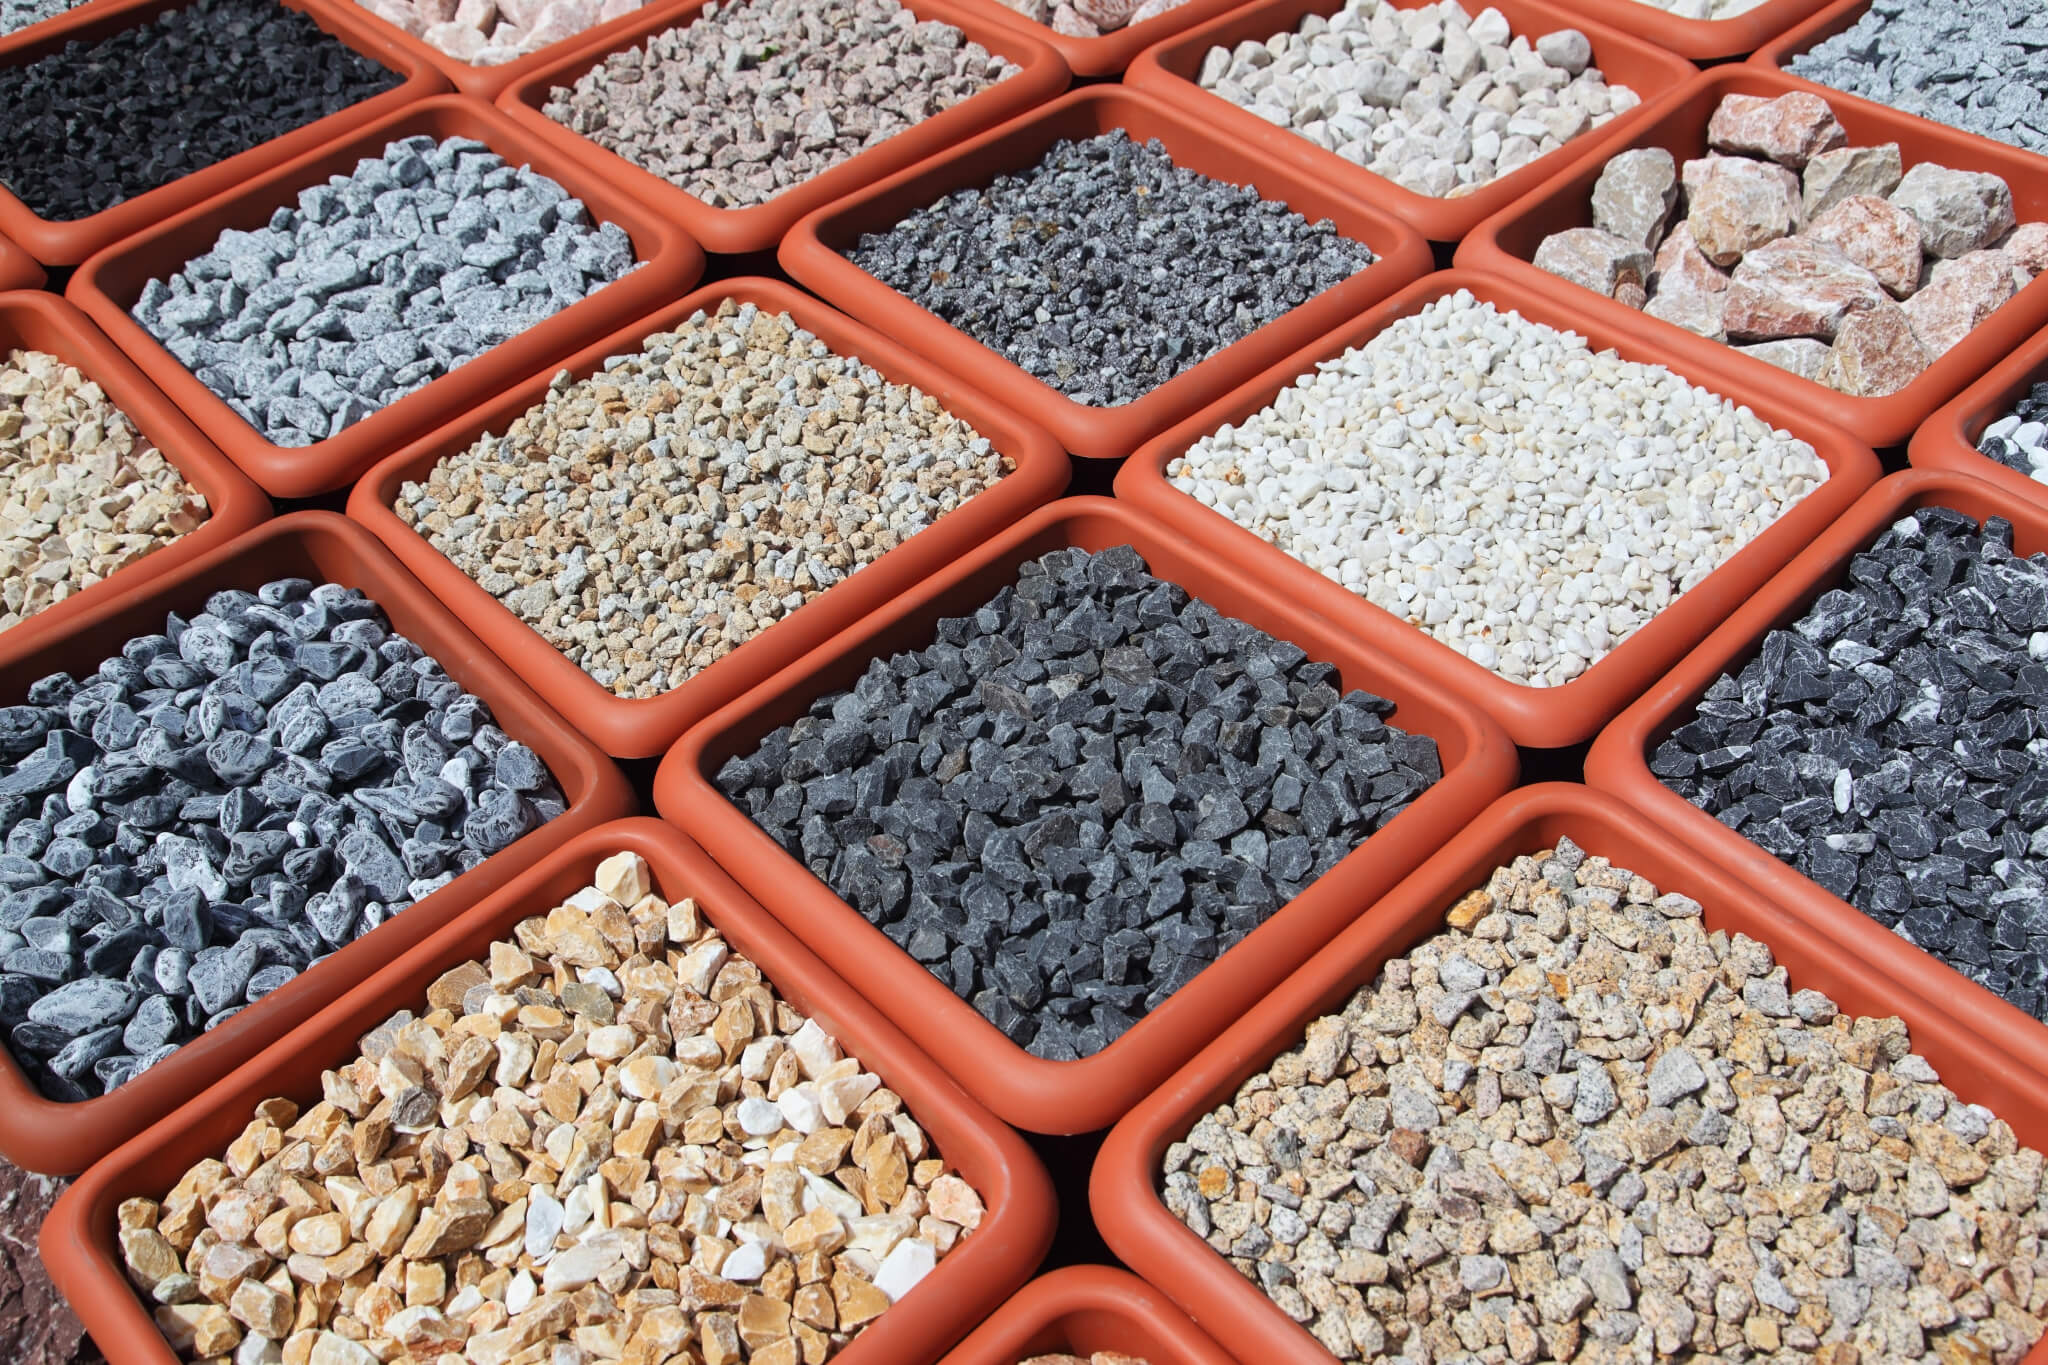 utah rock supply, public rock supply, consumer rock supply